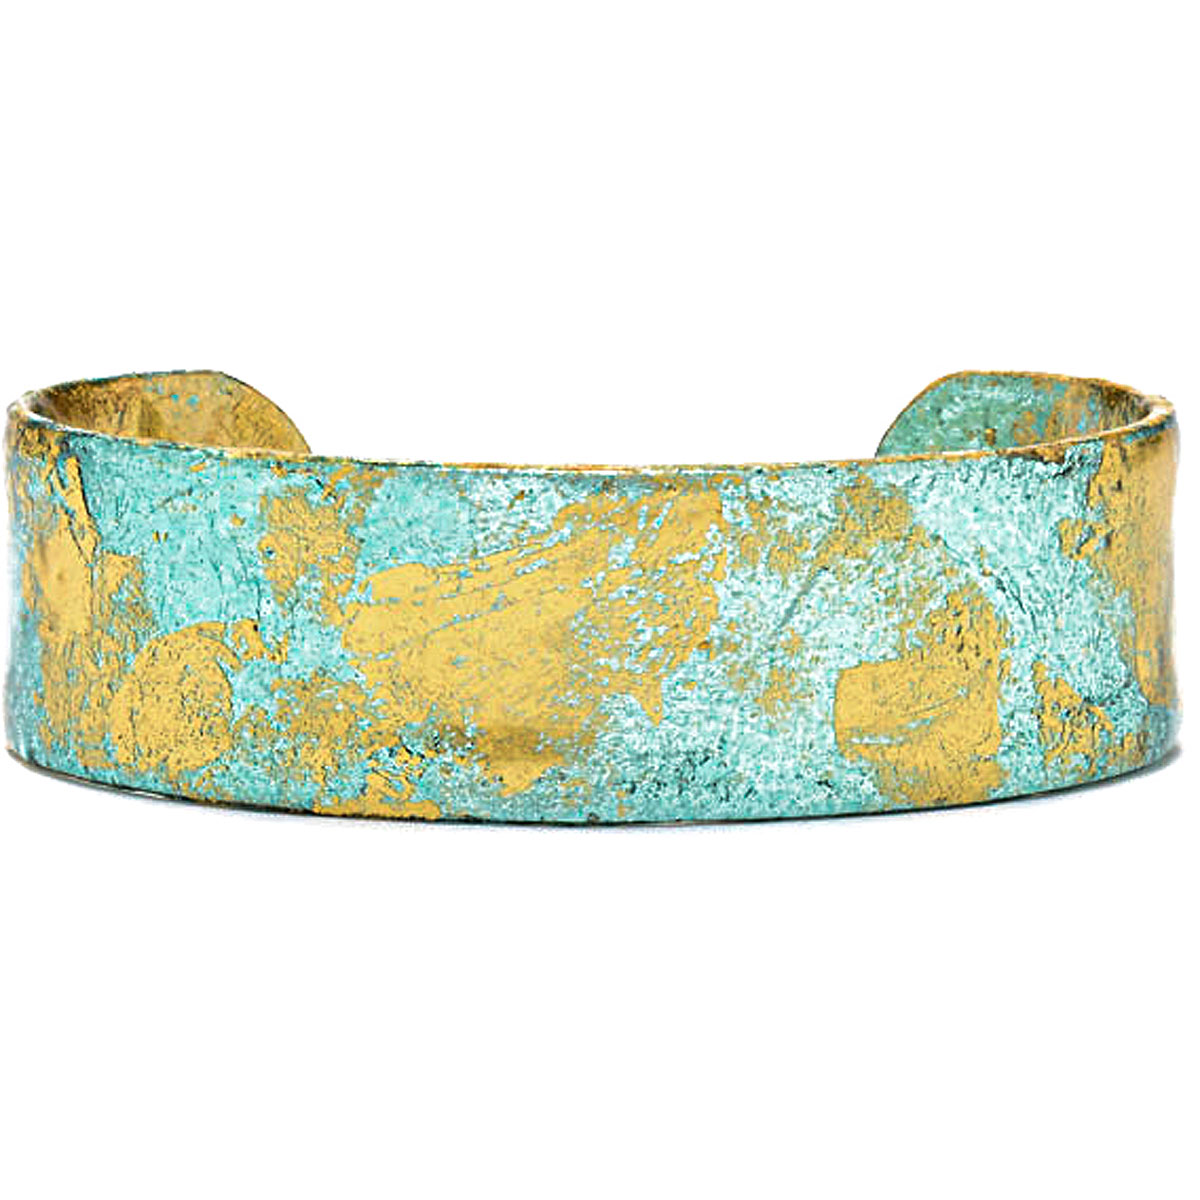 Evocateur Bracelet for Women, Turquoise, 22K Gold Leaf, 2019